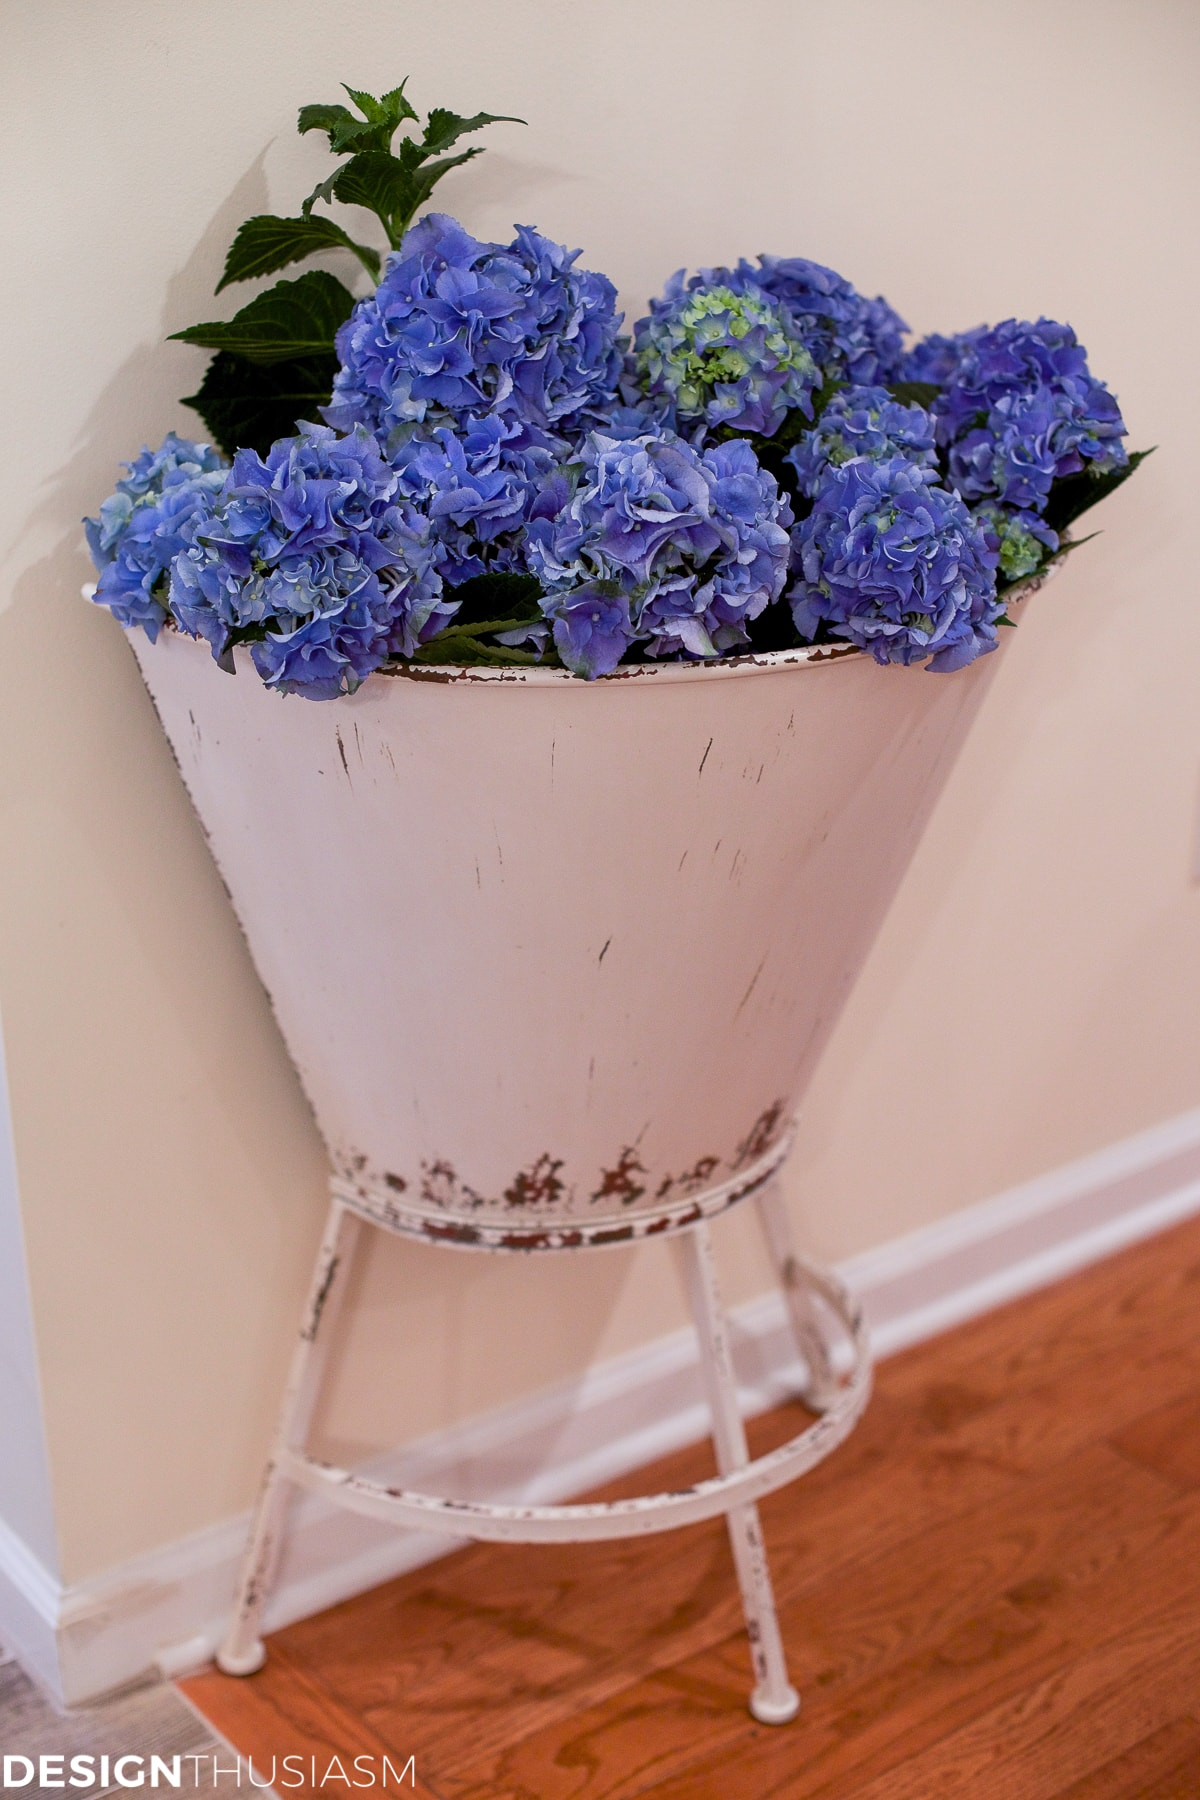 Blue hydrangea in a metal planter - designthusiasm.com